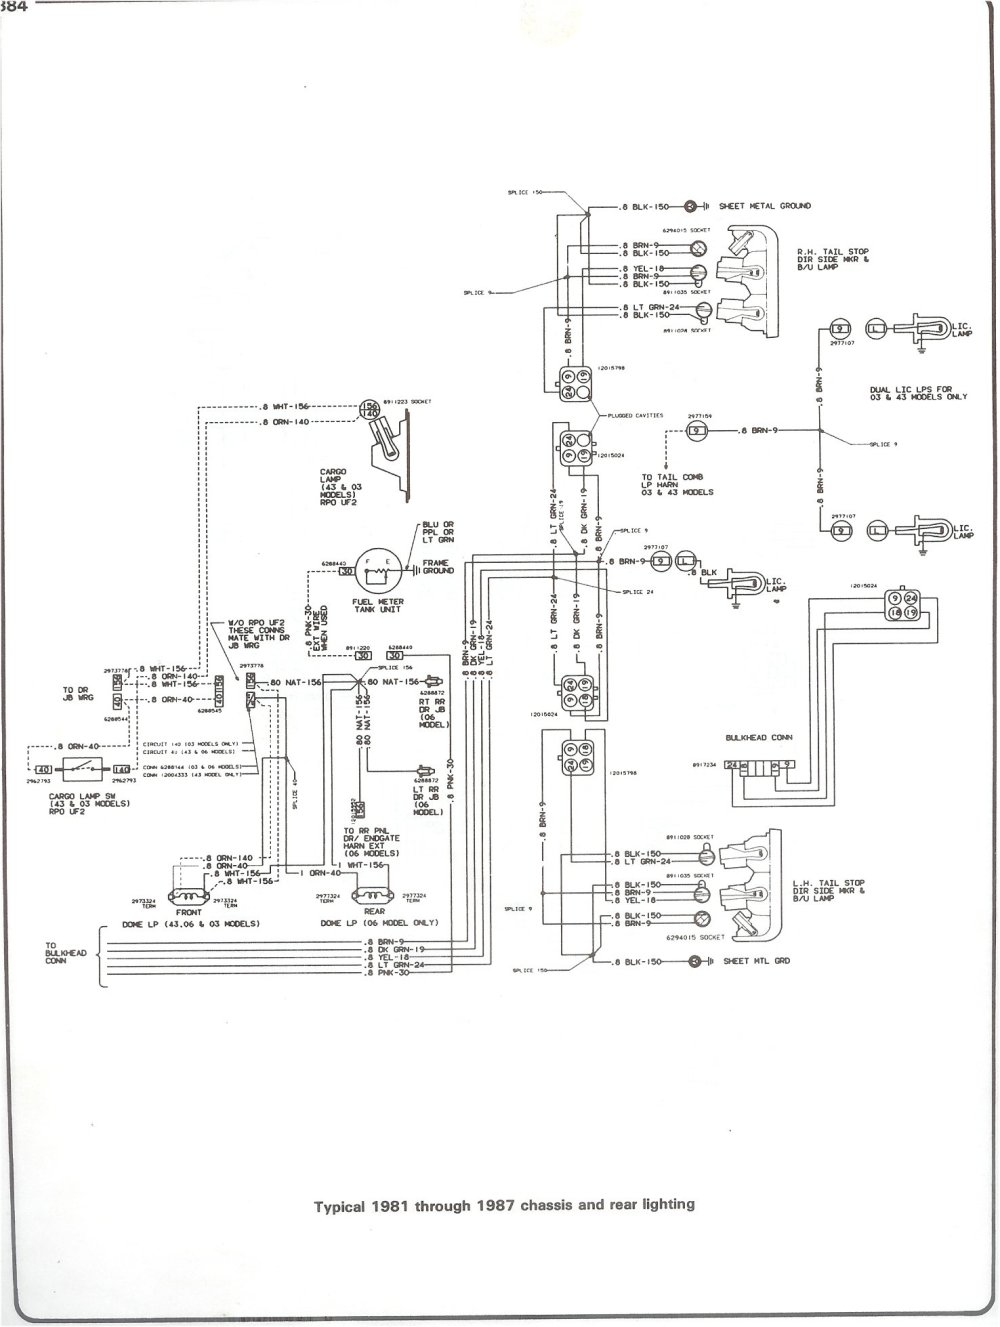 medium resolution of complete 73 87 wiring diagrams 85 monte carlo ss wiring diagram 81 87 chassis and rear